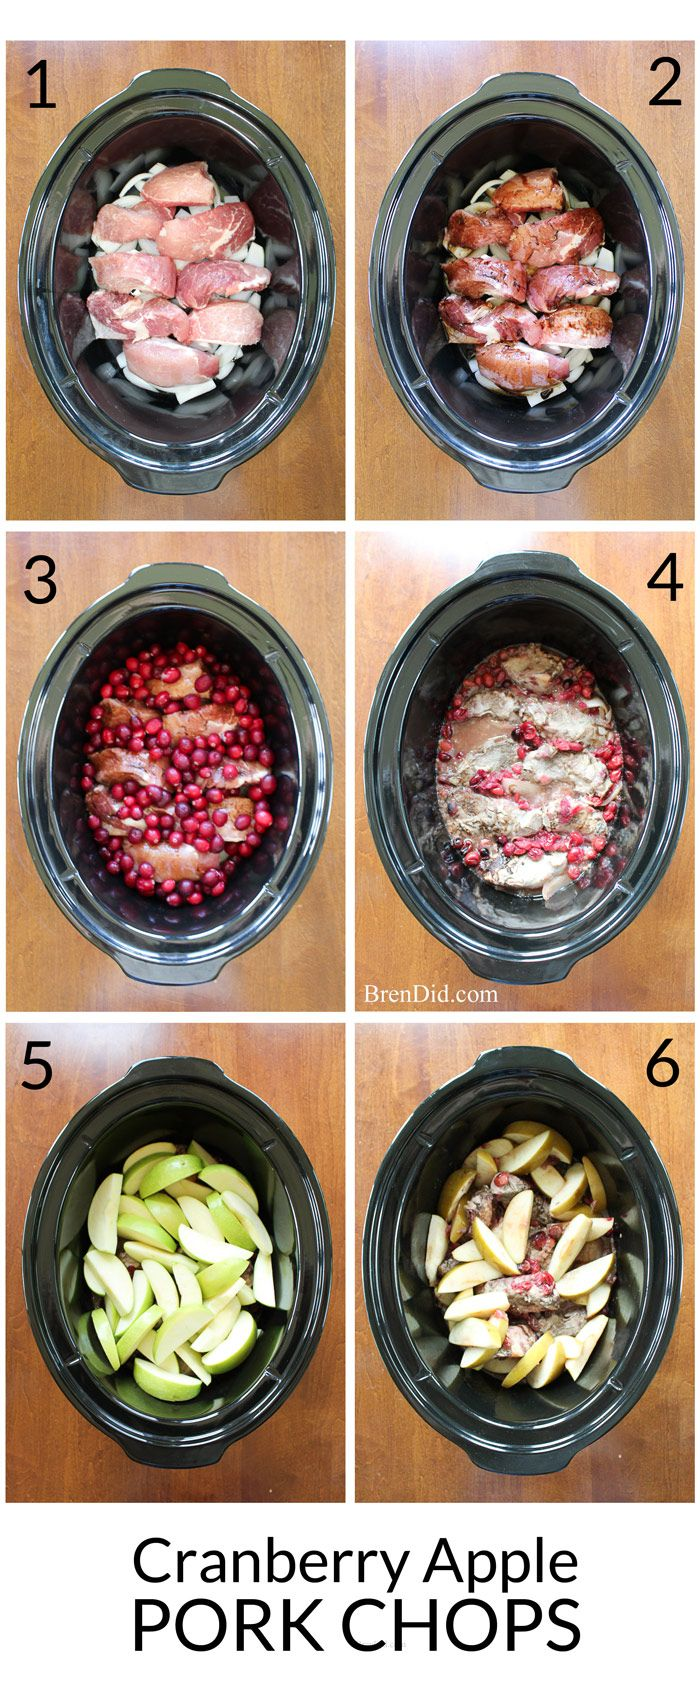 Boneless pork chops or pork ribs simmer with cranberries, onion and apples to create a delicious dish flavored with balsamic vinegar. Try this easy and delicious slow cooker recipe.